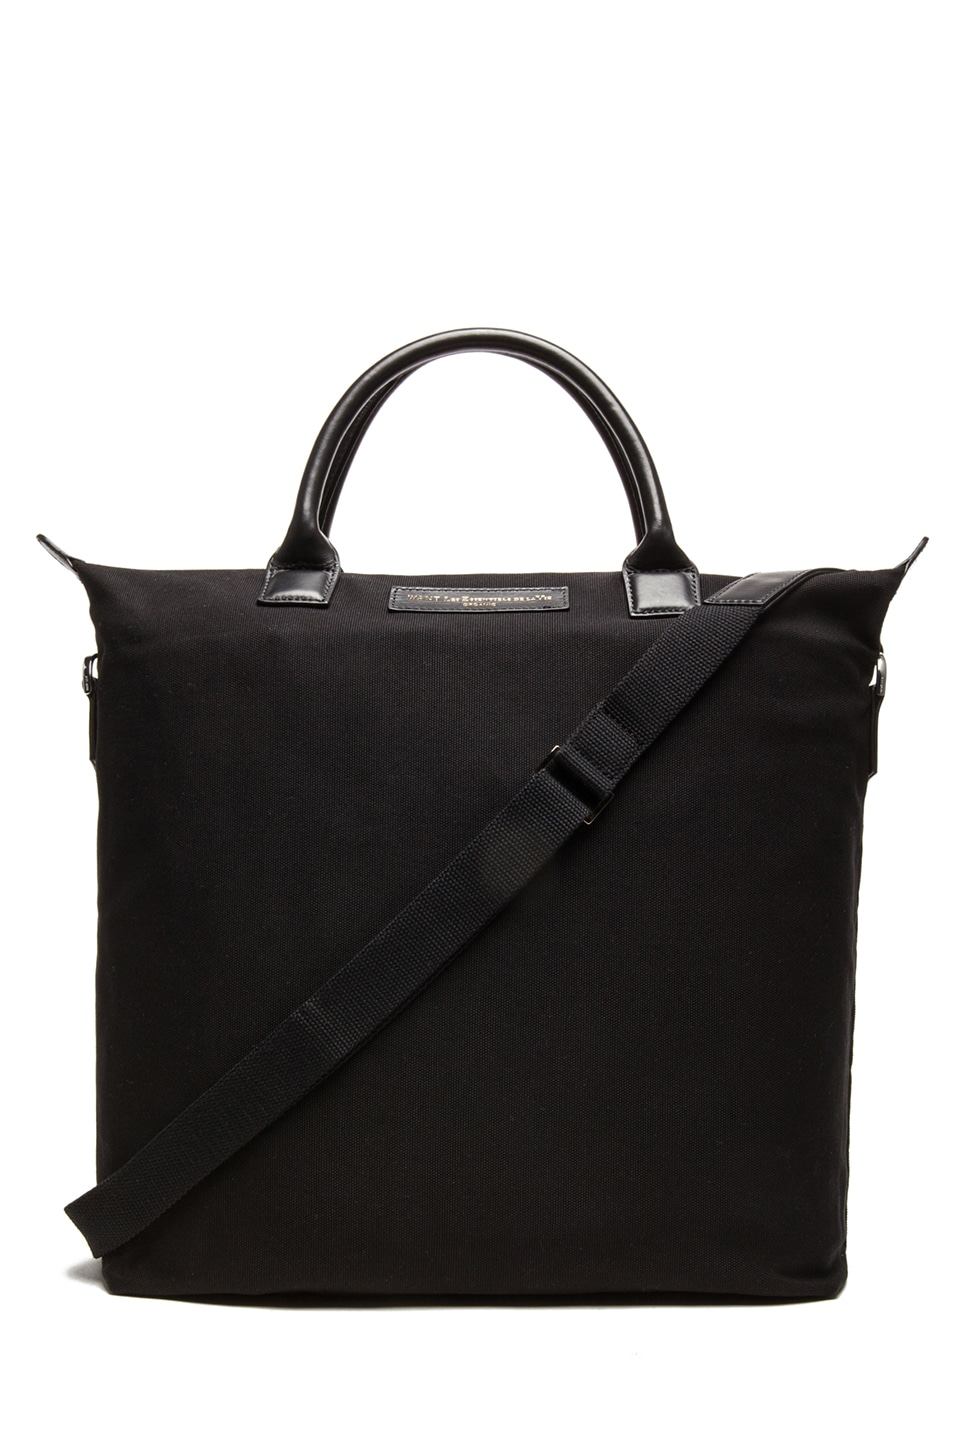 Image 1 of Want Les Essentiels De La Vie O'Hare Cotton Shopper Tote in Black